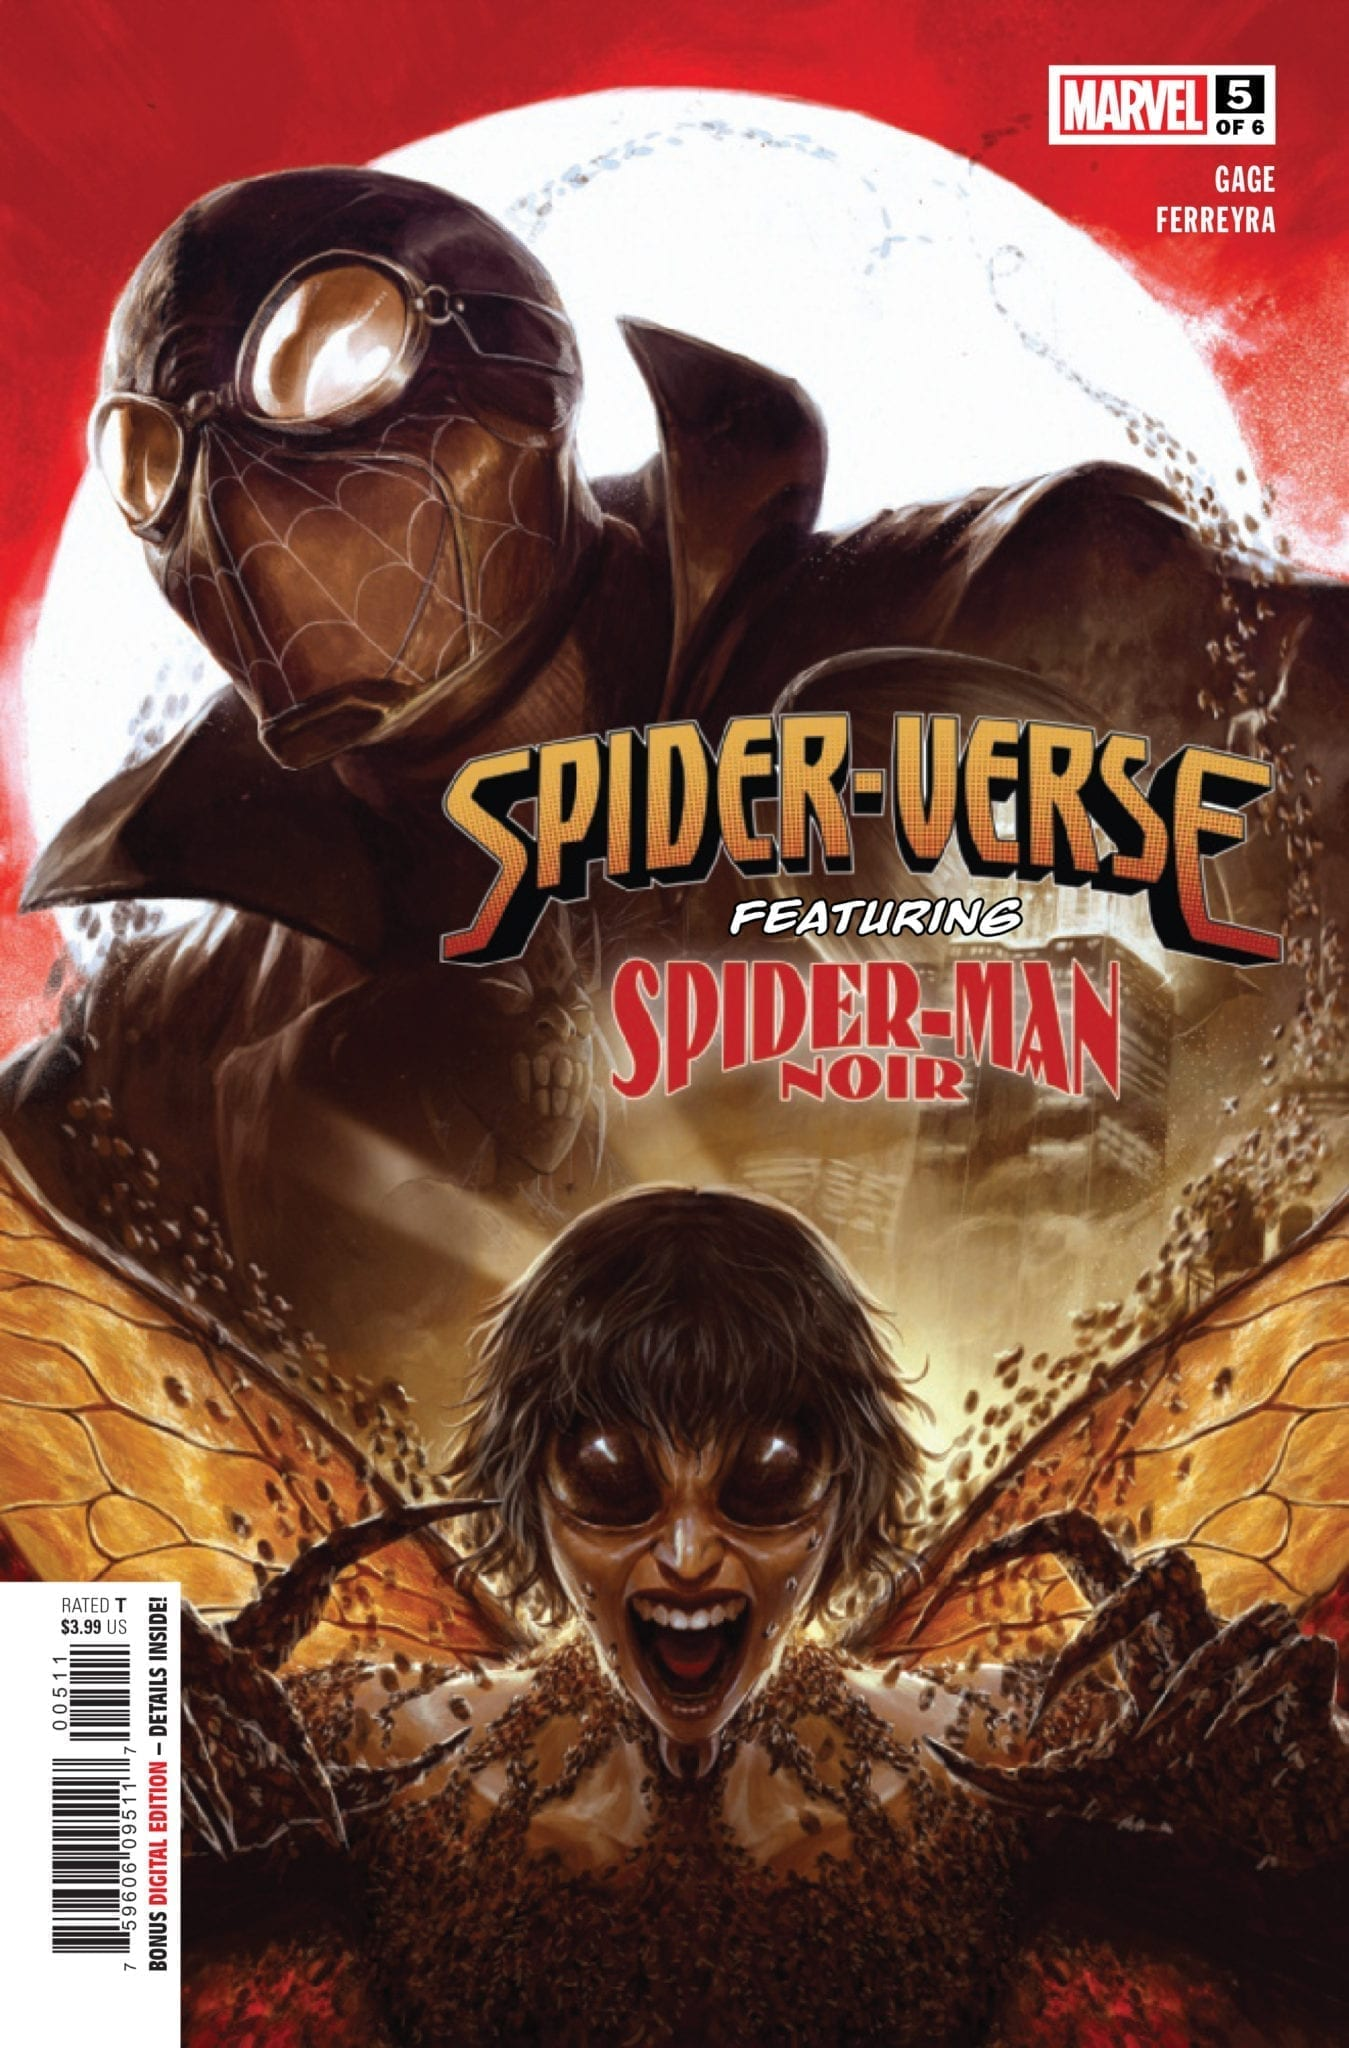 marvel comics exclusive preview spider-verse #5 spider-man noir